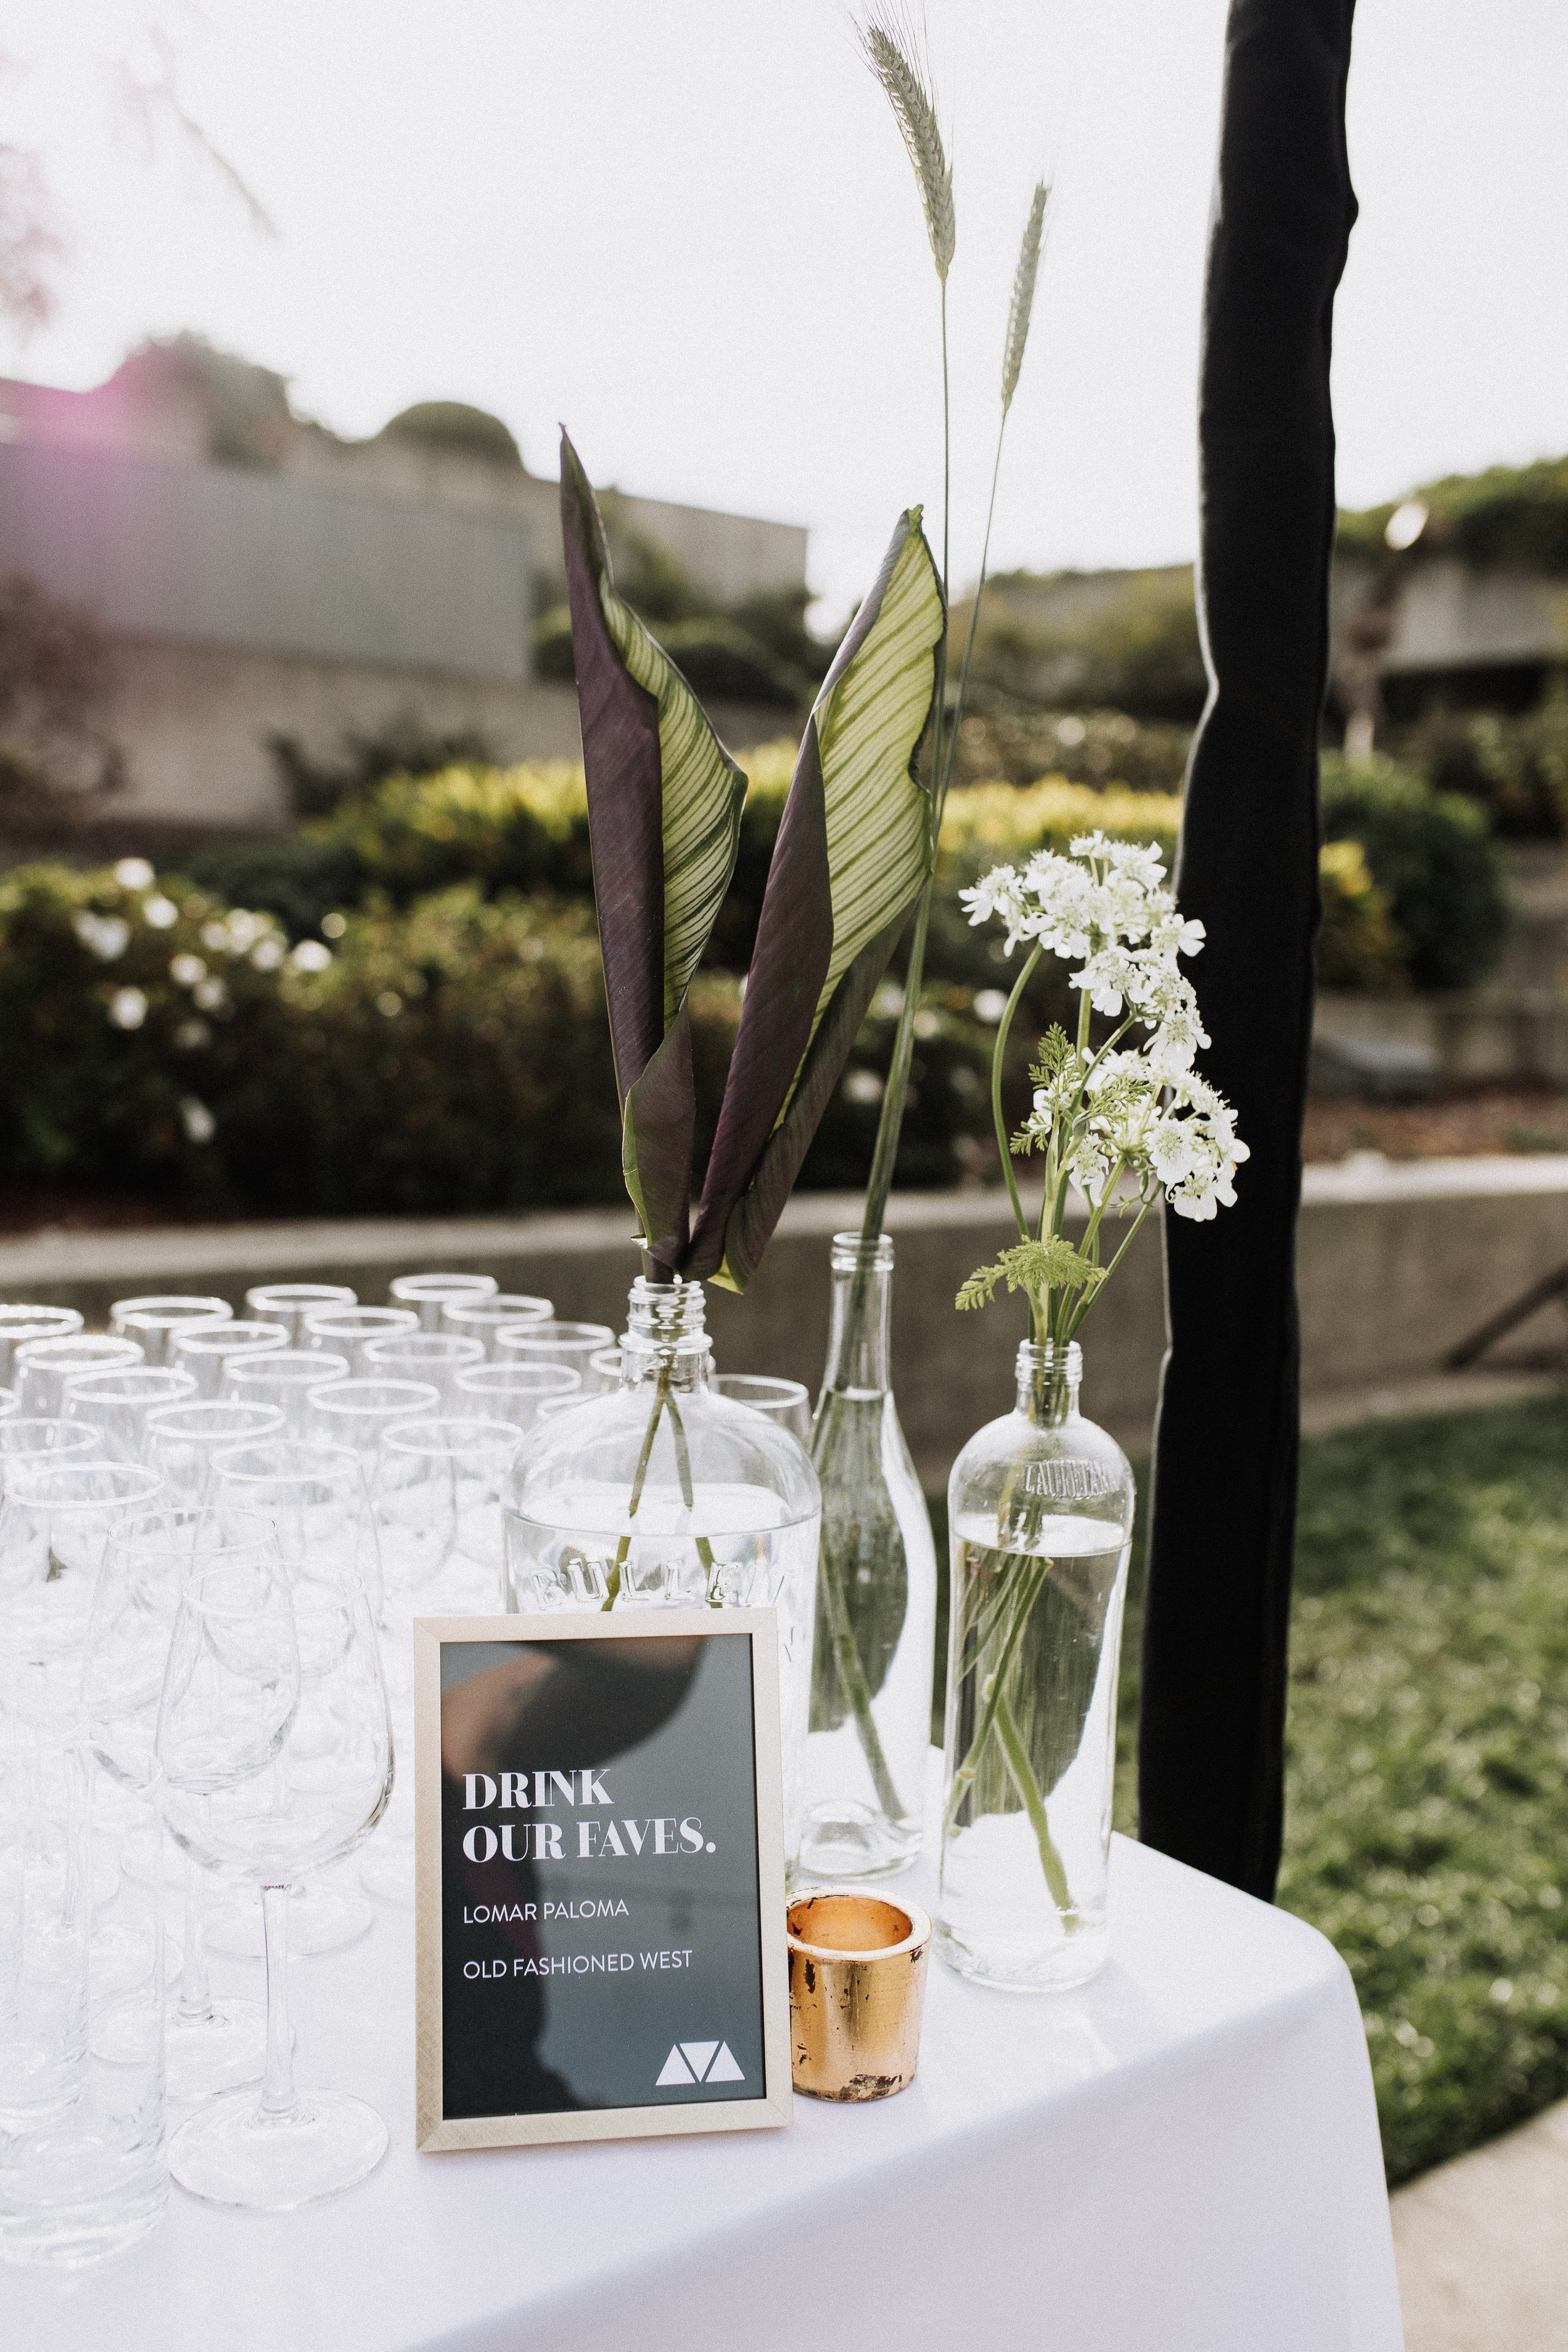 Bar Signature Drink Menu Wedding Part Oakland Museum KLdc Lomar Paloma and Old Fashioned West